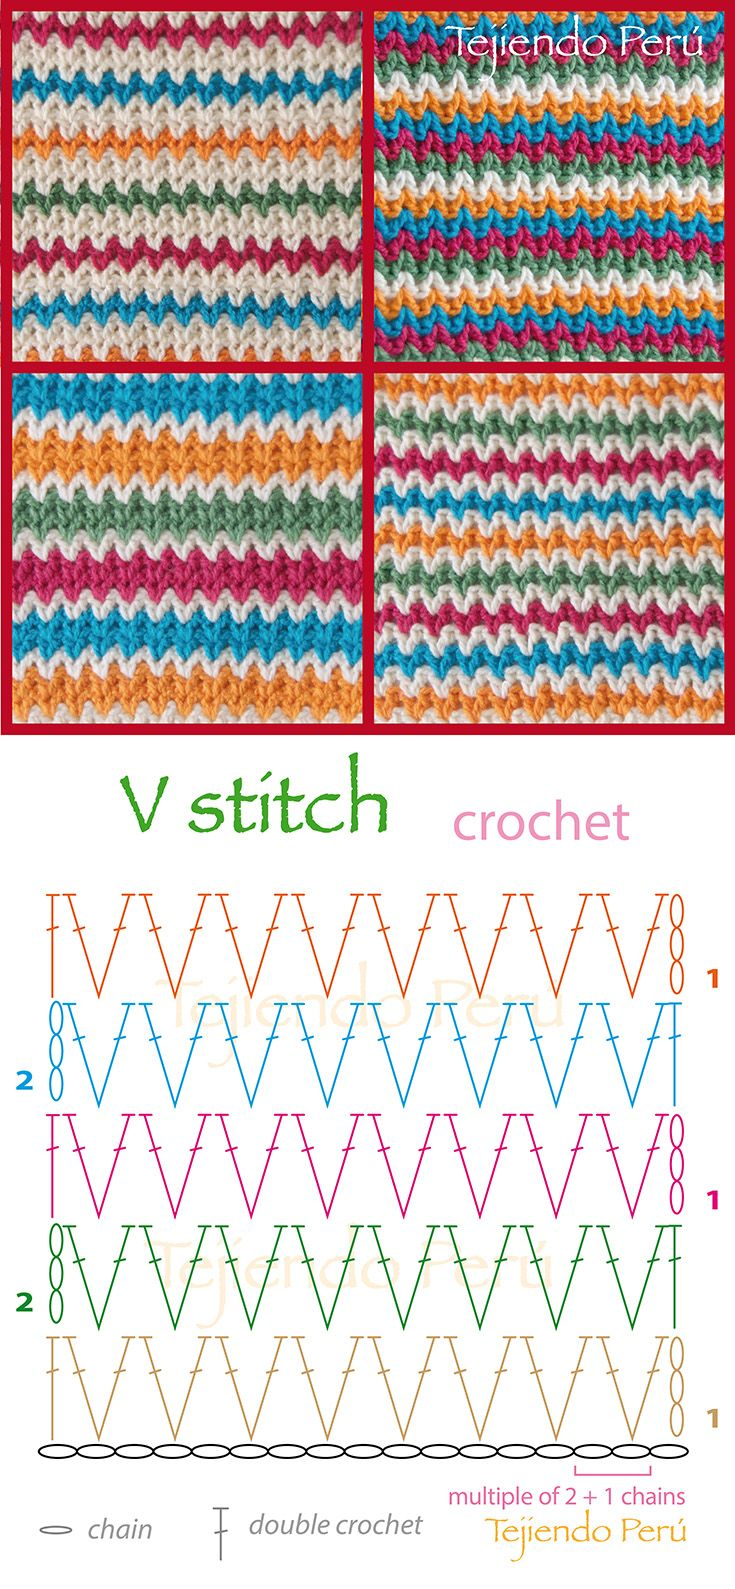 Crochet stitch diagram example electrical wiring diagram crochet v stitch pattern diagram or chart puntos fantas a en rh pinterest com crochet stitch diagram creator crochet stitch diagram creator ccuart